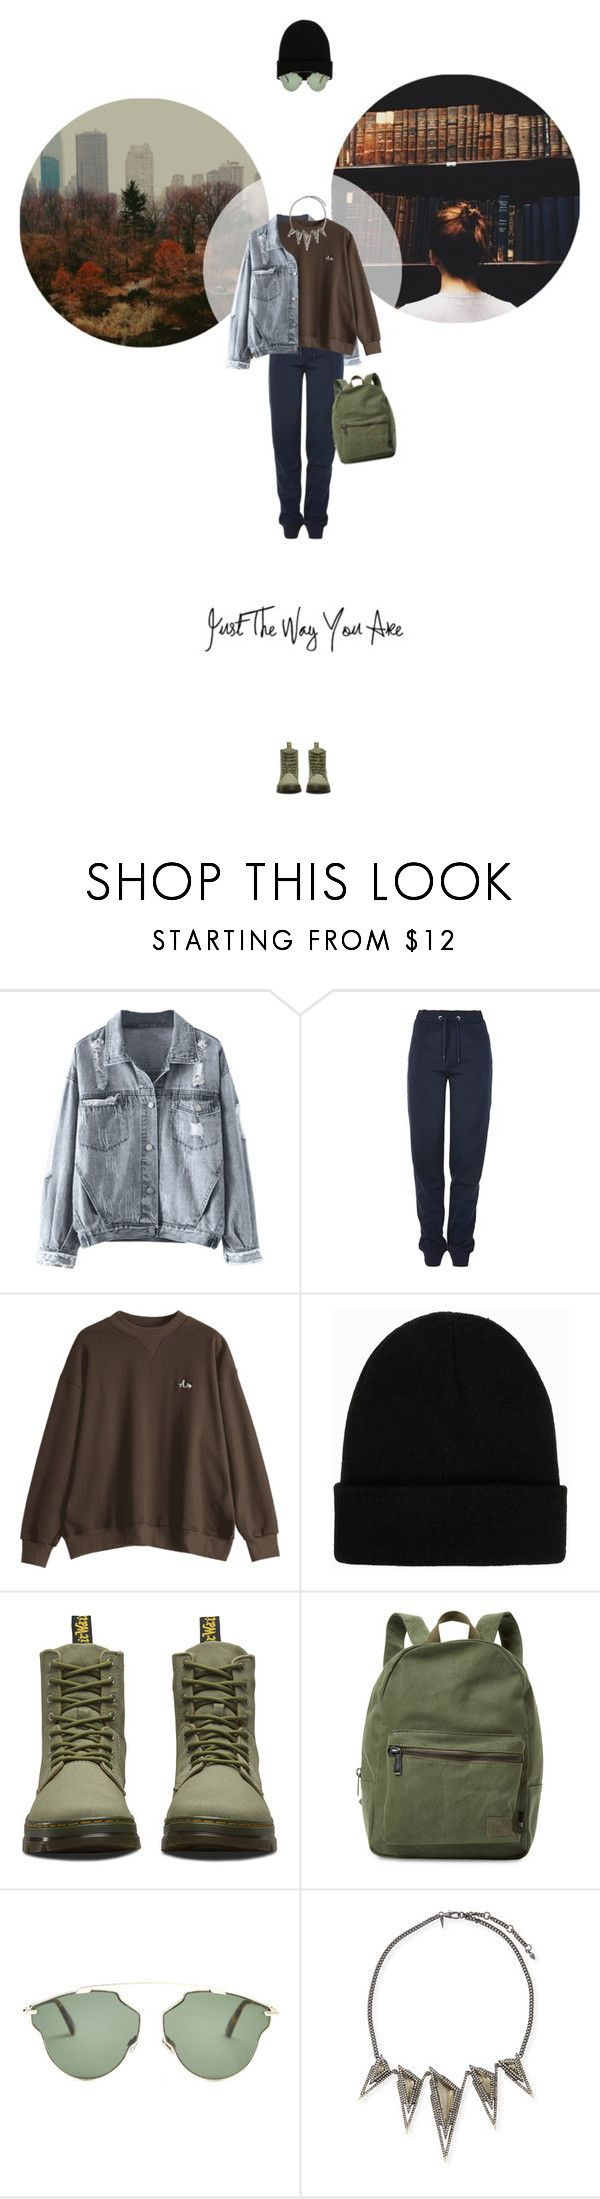 // 1330. Just The Way You Are. by lilymcenvy on Polyvore featuring Tommy Hilfiger, Dr. Martens, Herschel Supply Co., Alexis Bittar, Christian Dior and NLY Accessories